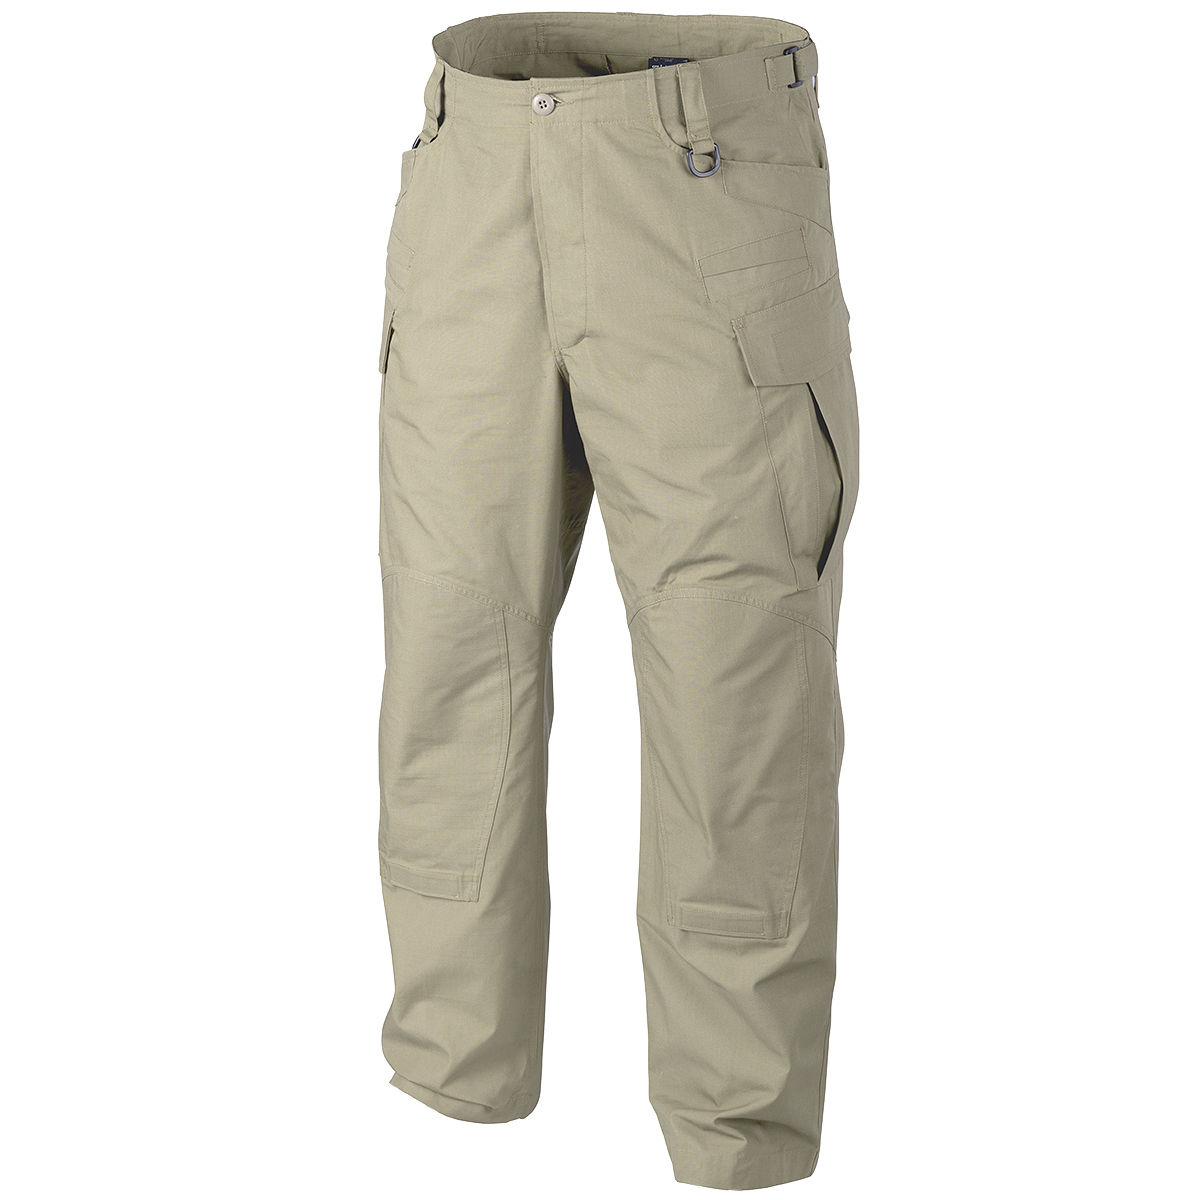 HELIKON MILITARY SFU NEXT COMBAT UNIFORM TROUSERS MENS ARMY CARGO ...